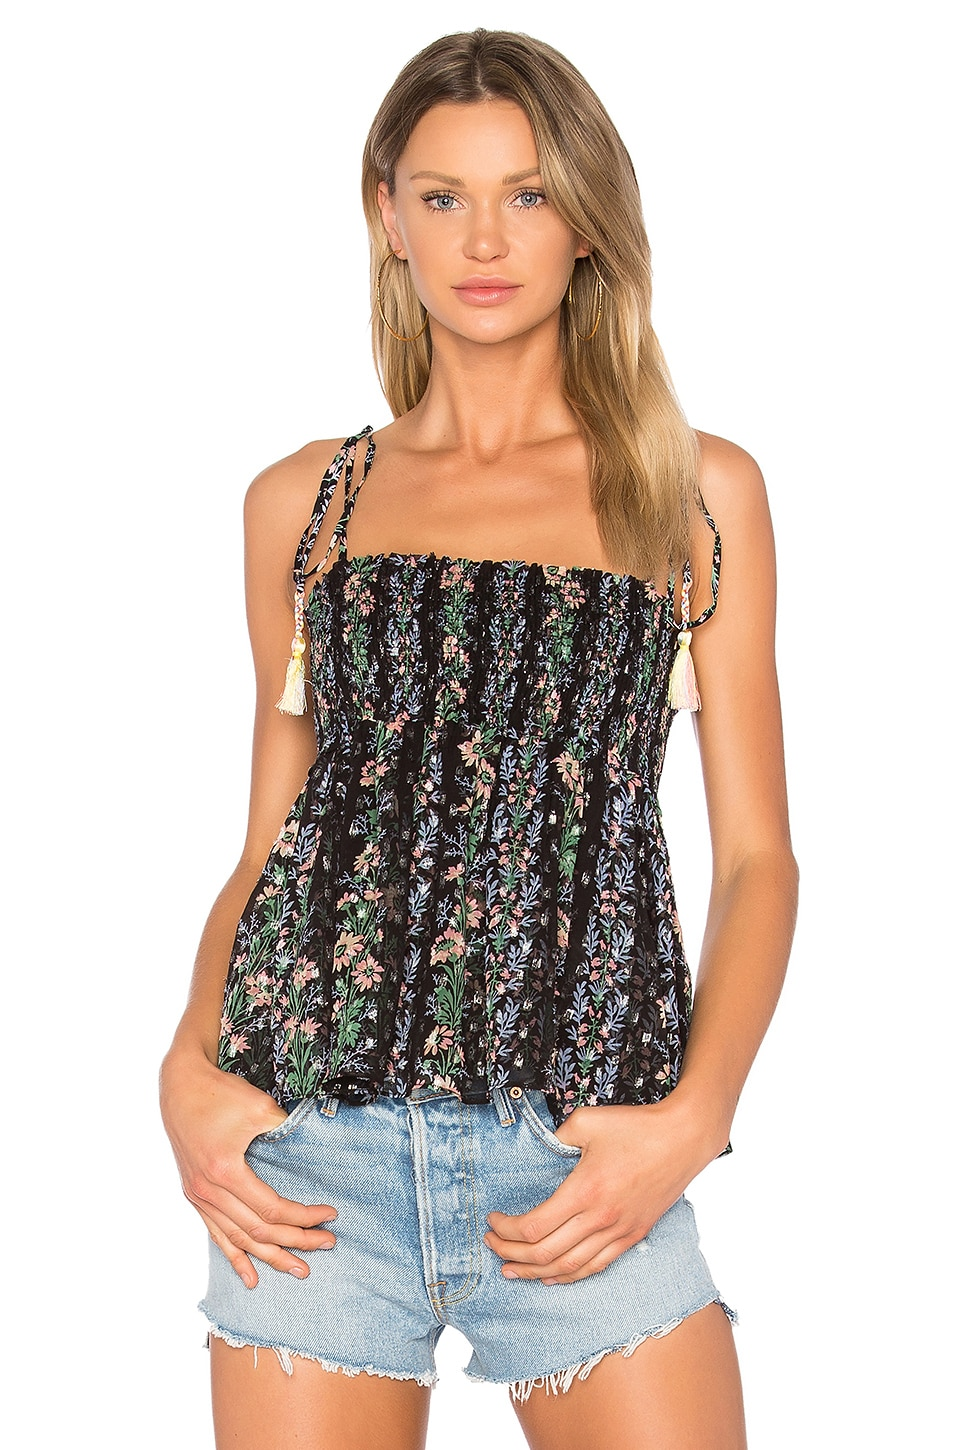 Floral Stripe Tie Top by Needle & Thread